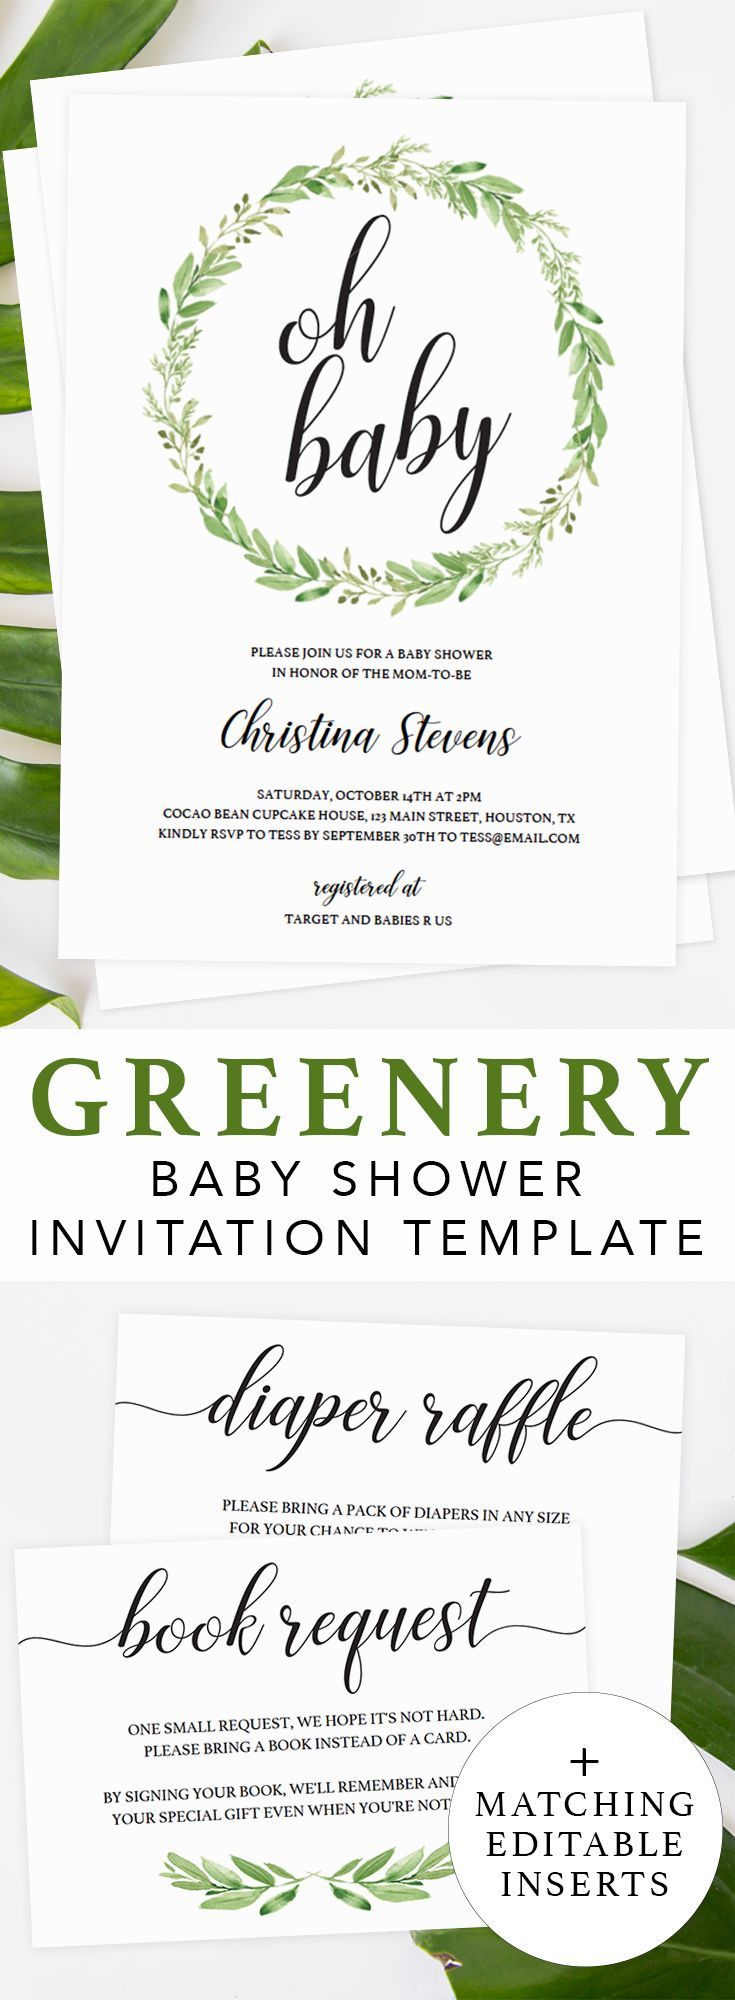 Greenery baby shower ideas by LittleSizzle. Click through to create your own botanical baby shower invitation or re-pin for later! Green baby shower invite template and boho printable baby shower games. Greenery themed gender neutral editable baby shower invitations. Perfect for a green and white themed baby shower. Simply download, edit and print! #babyshowerideas #babyshowerinvites #printable #template #greenery #genderneutral #green #boho #botanical #DIY